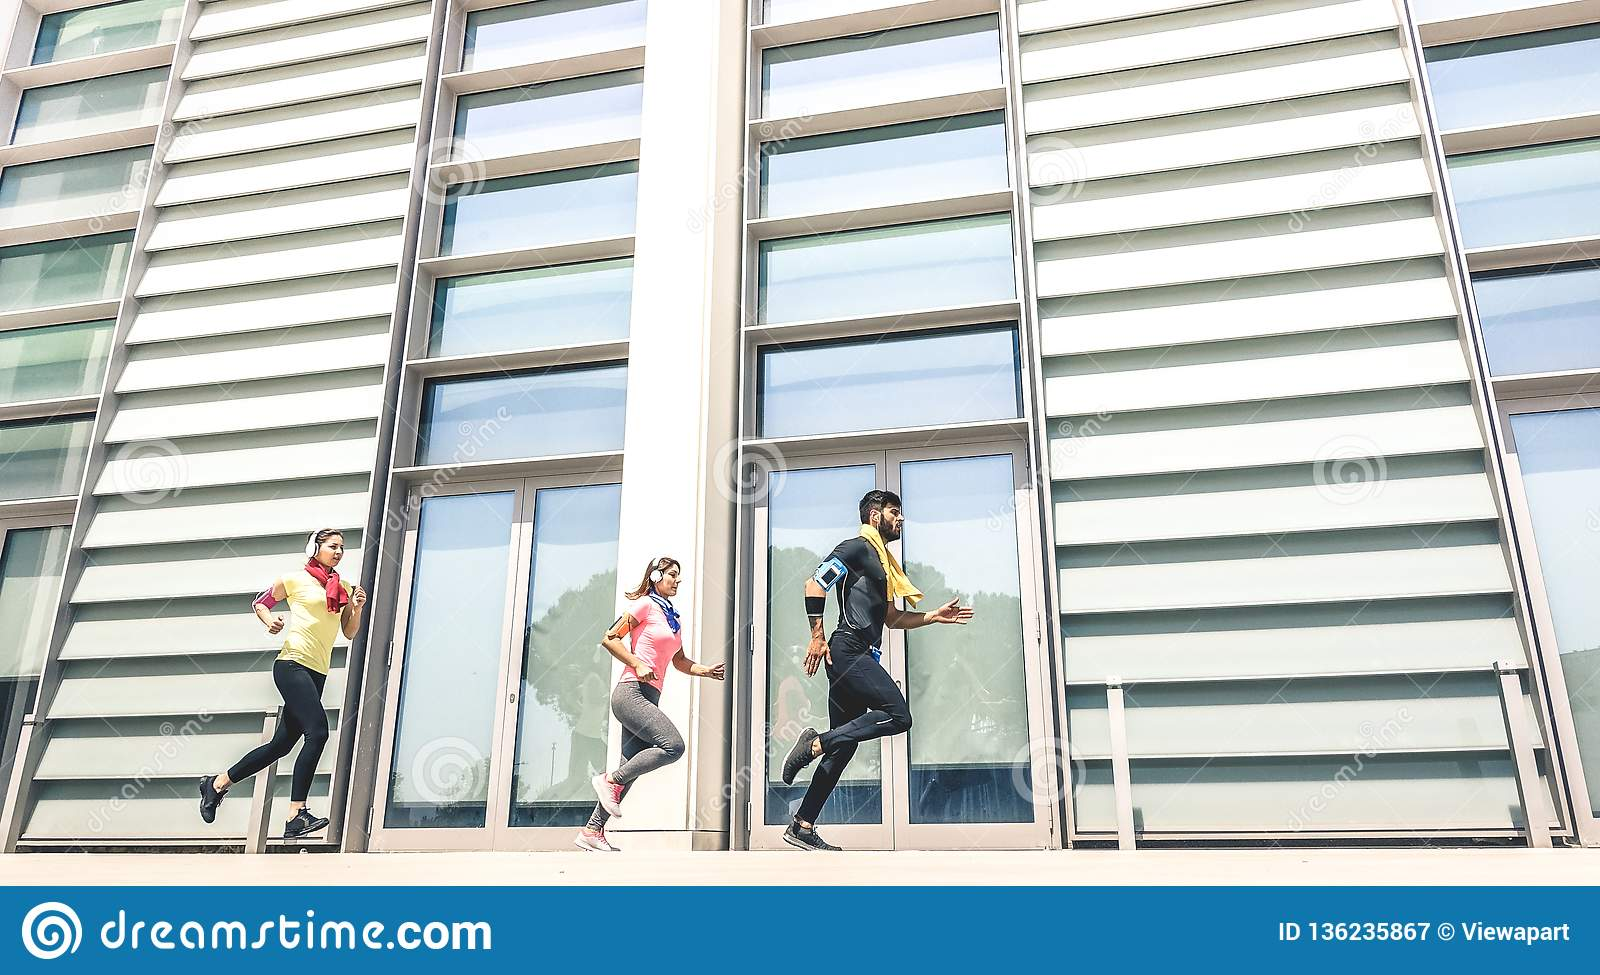 Young People Running In Modern Urban Area - Fitness Girls ...